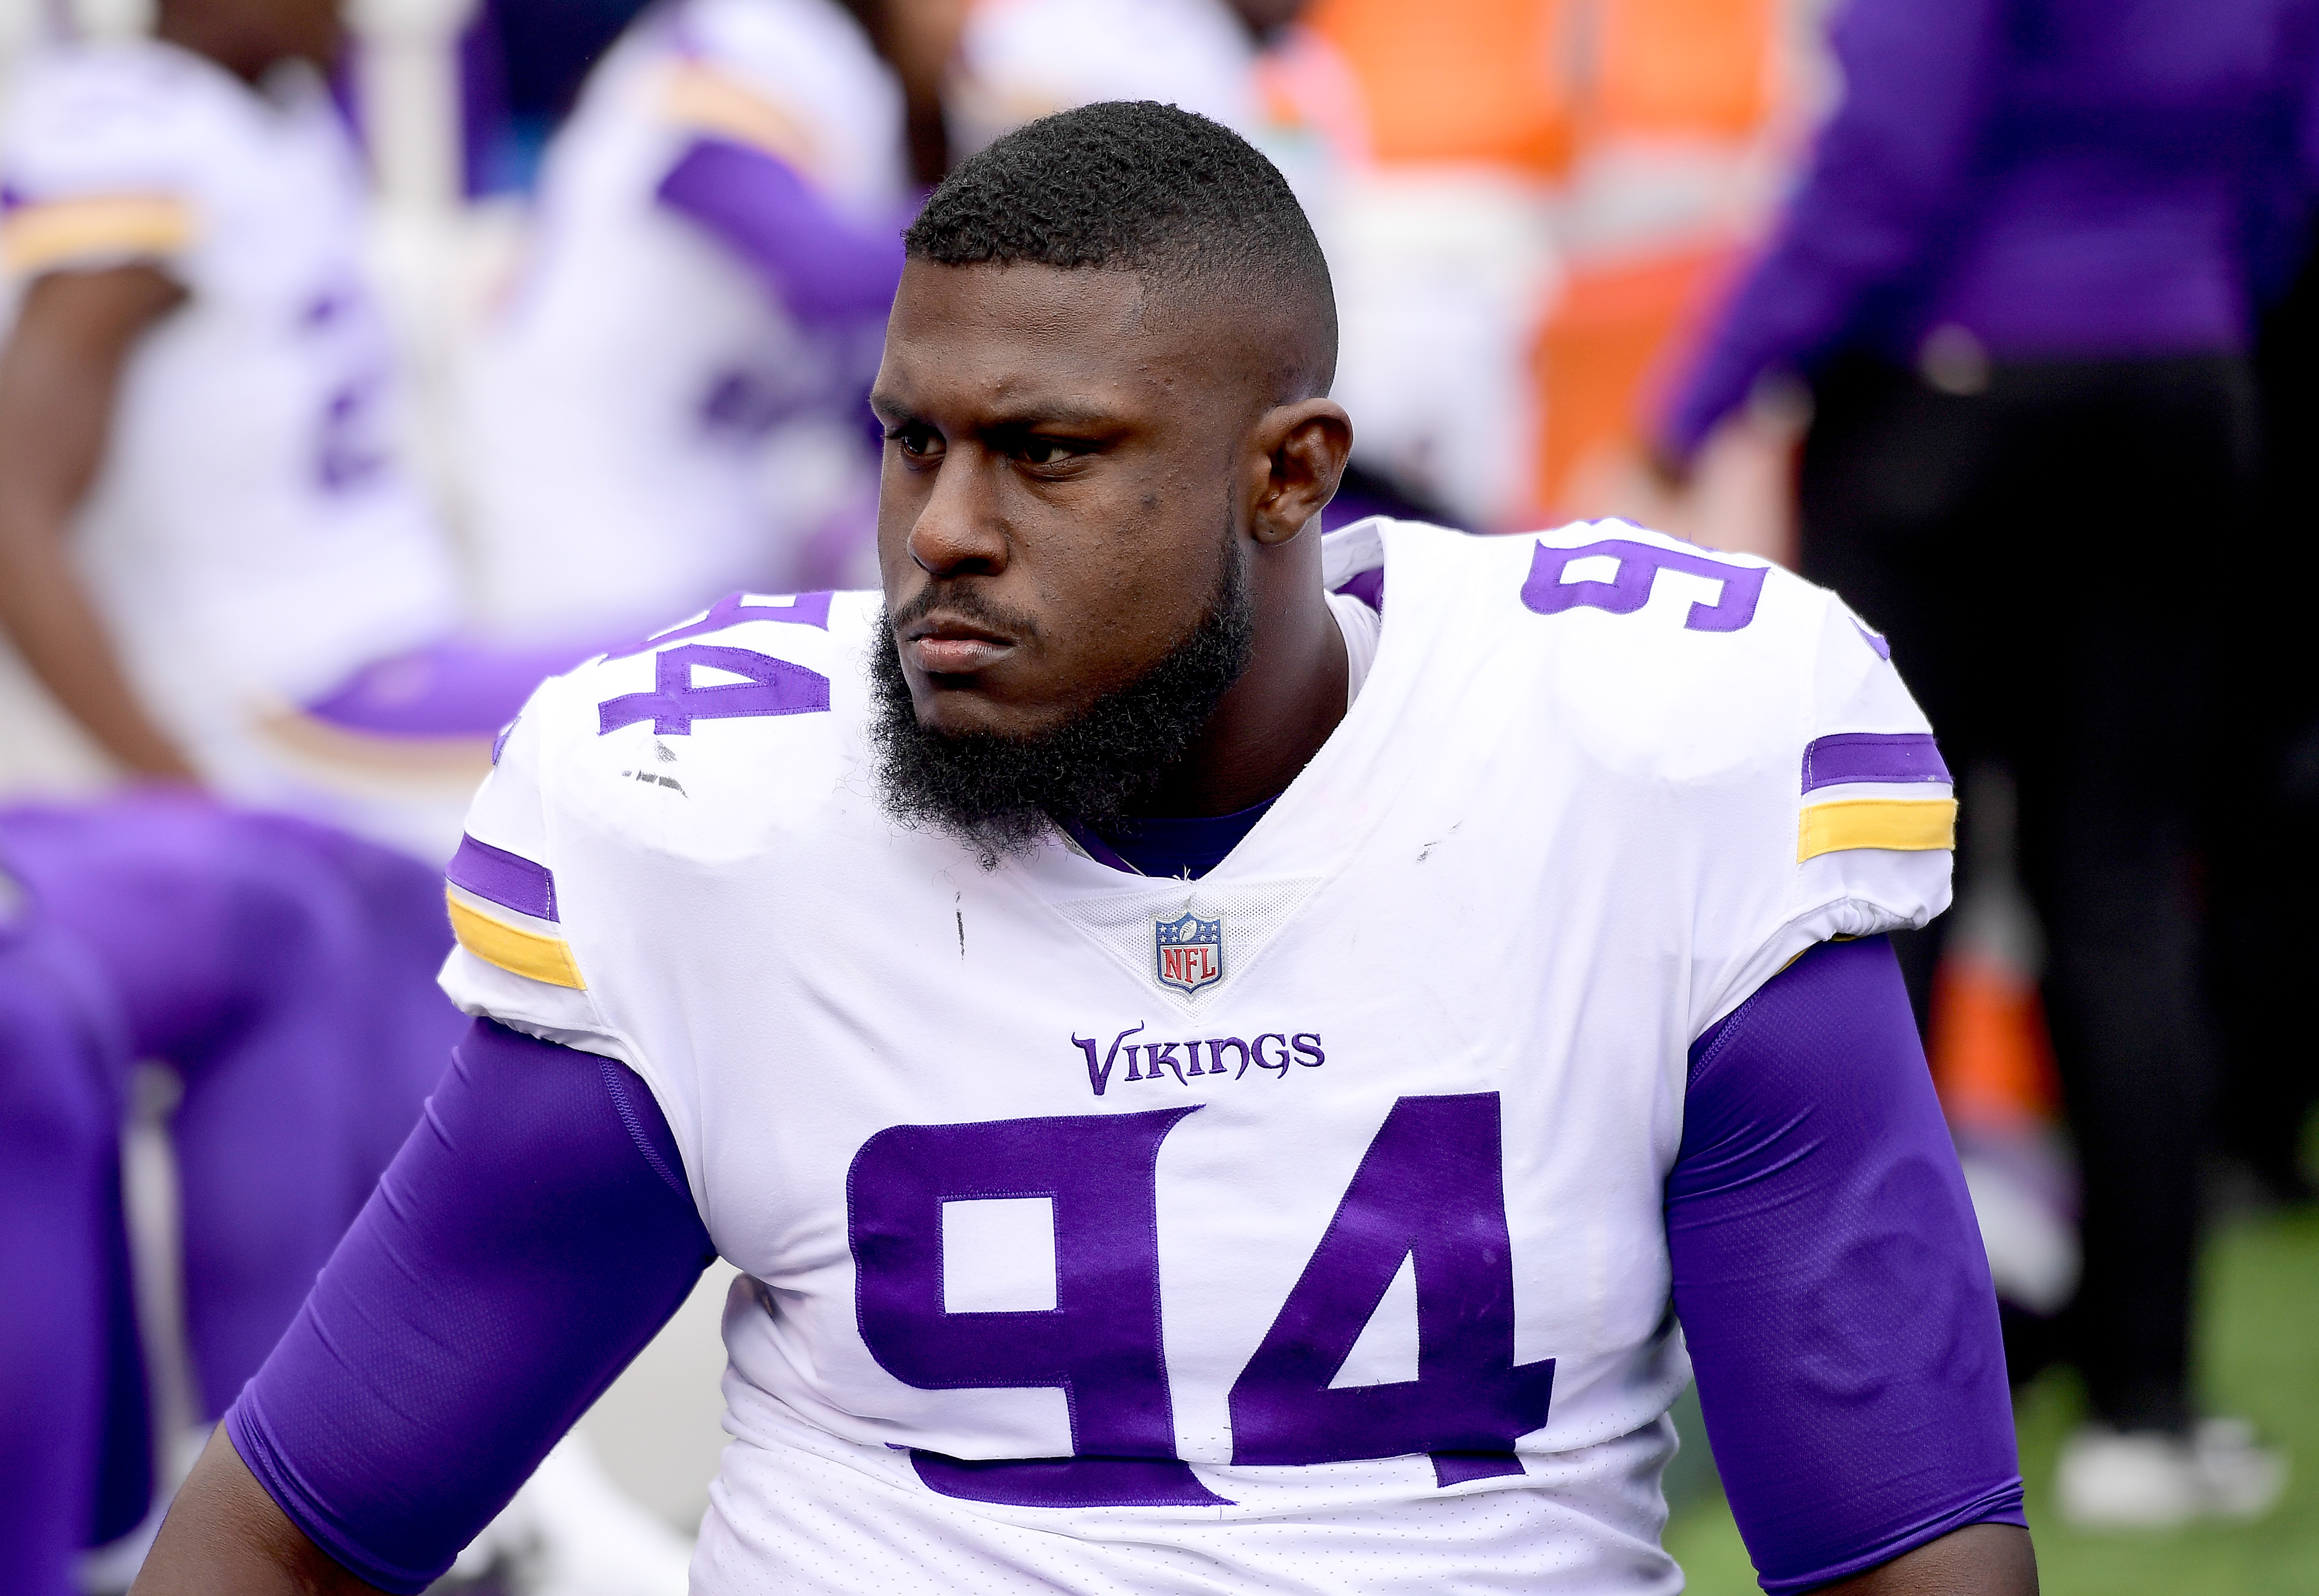 Jaleel Johnson almost looks like another Linval Joseph for the Vikings